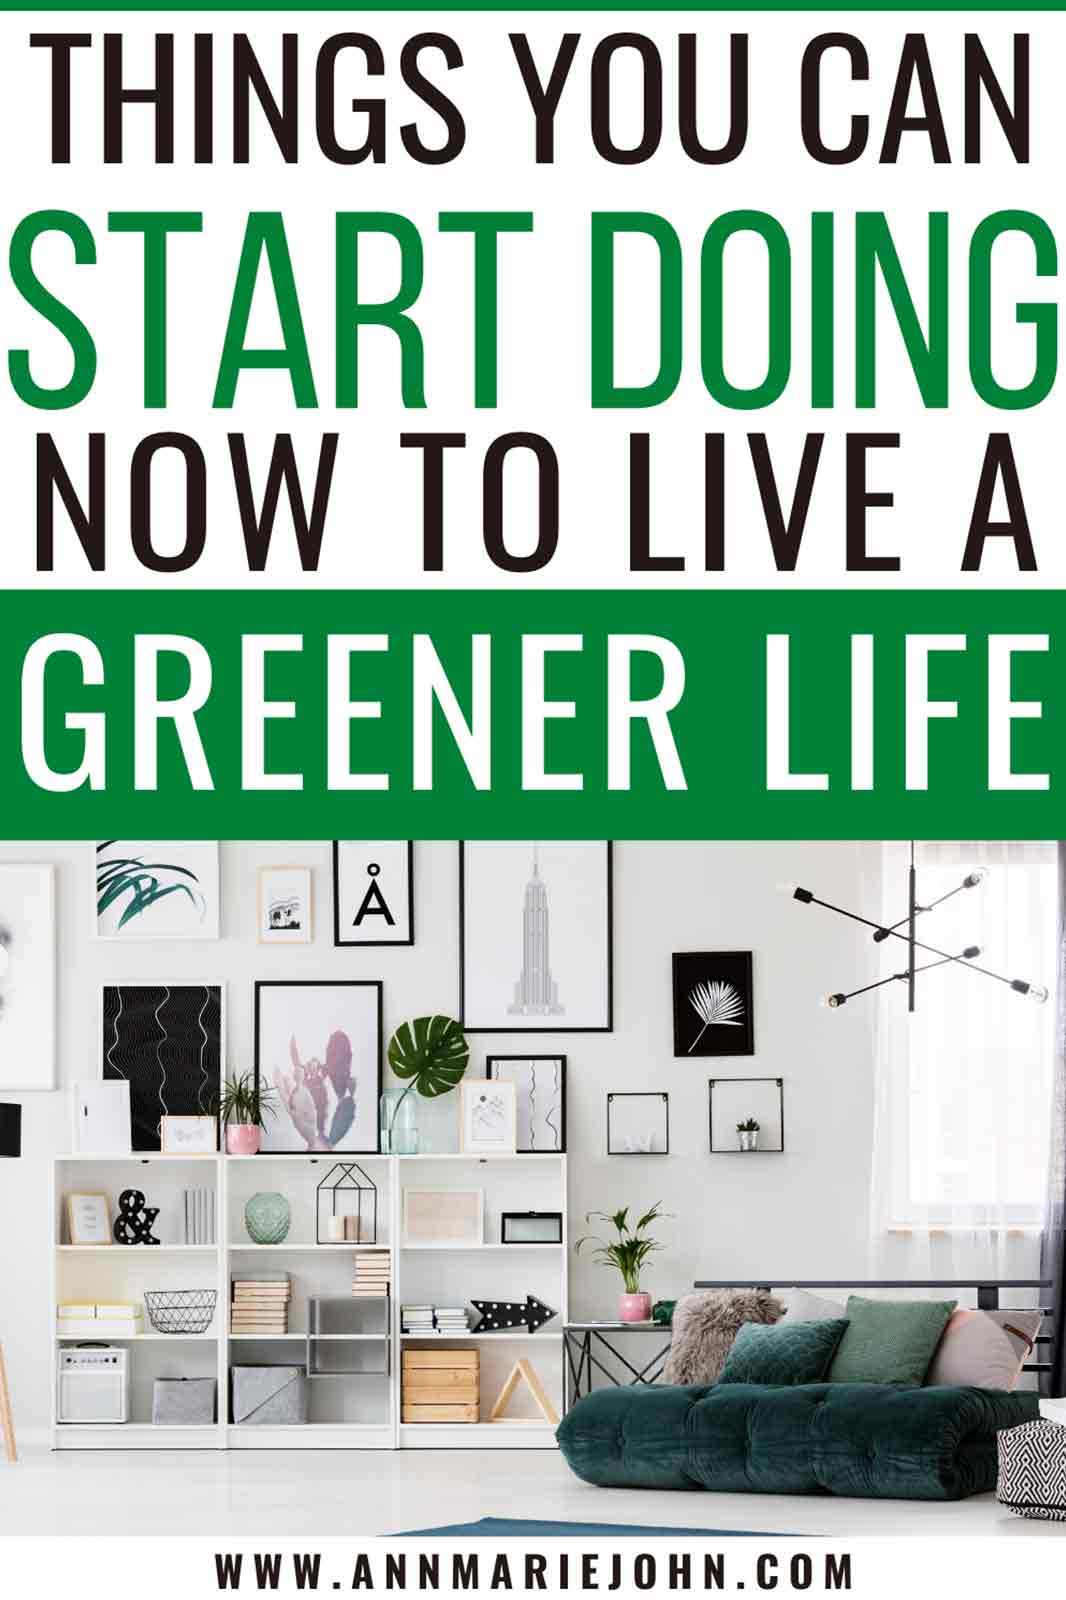 how to live a greener life